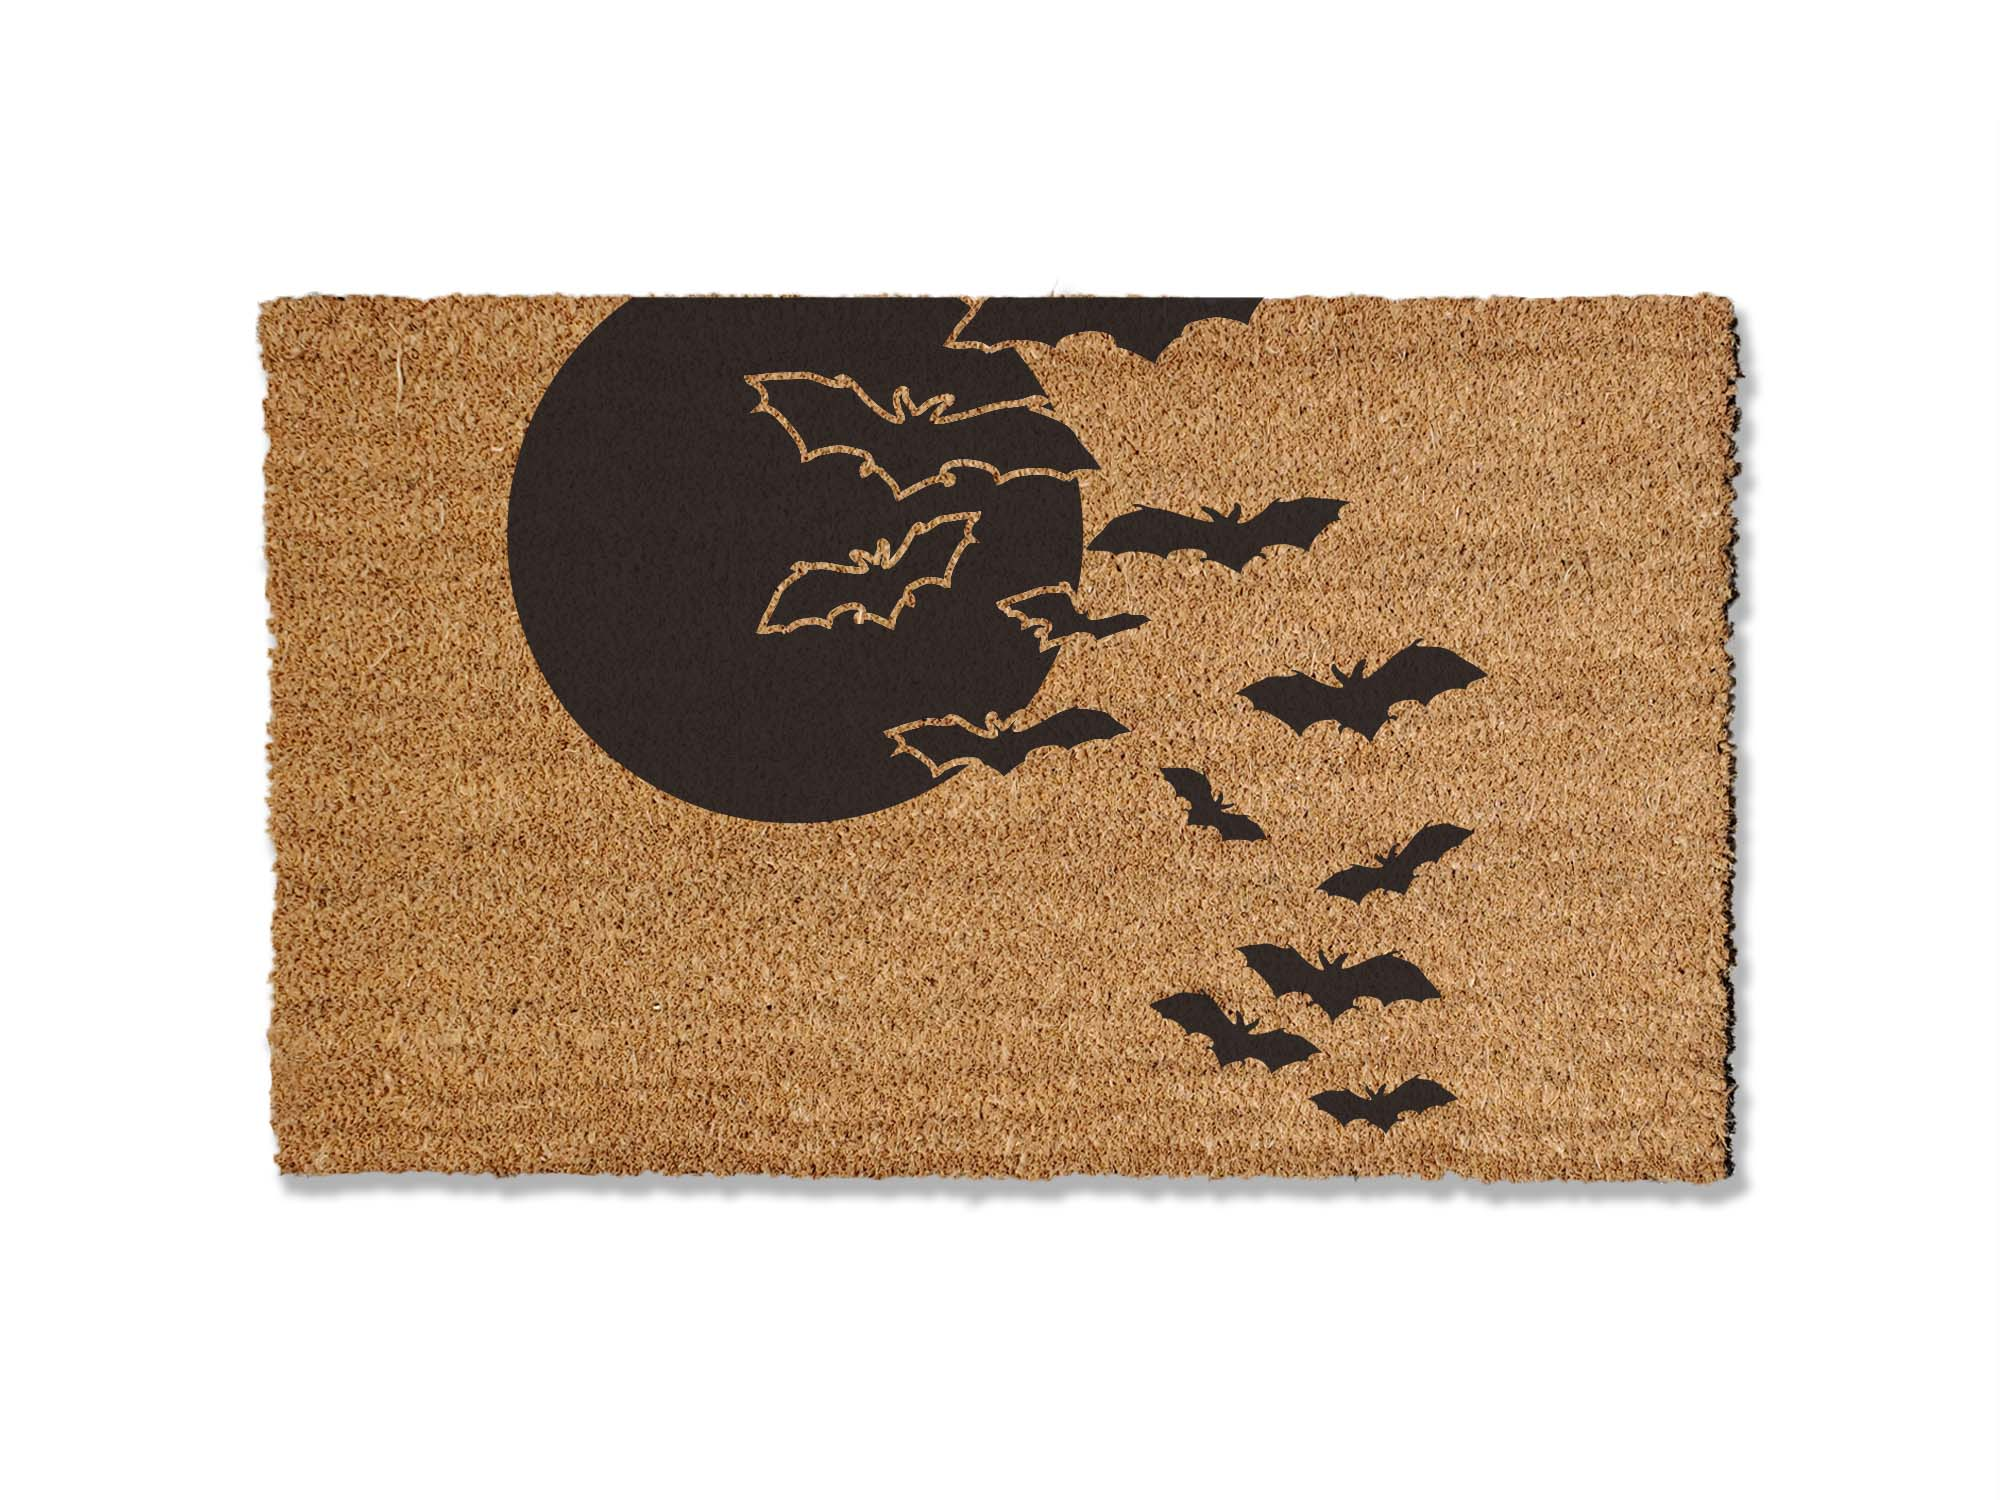 French Bull Dog Silhouette Doormat